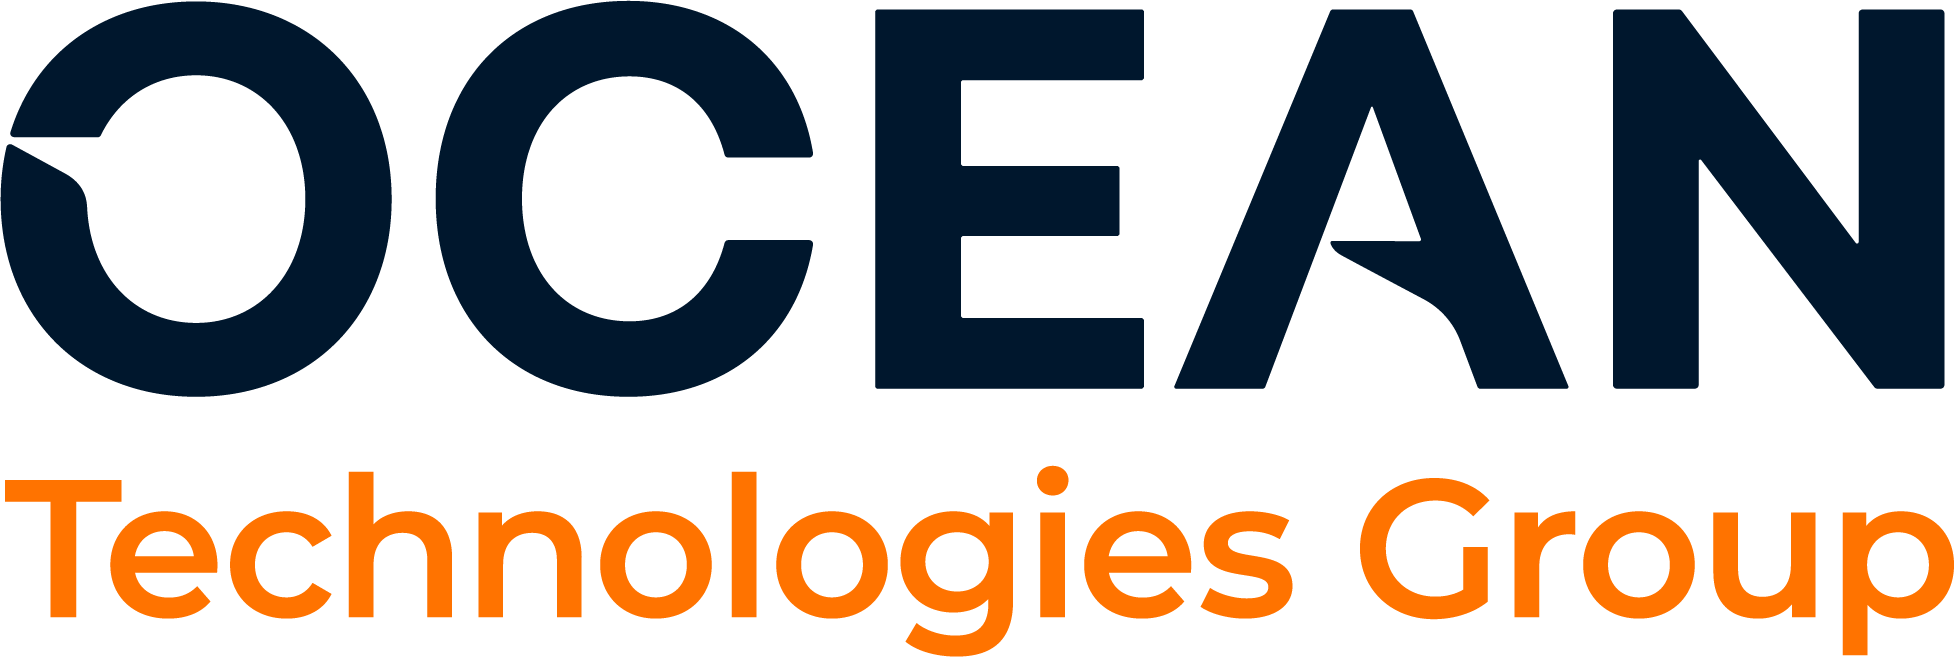 Ocean Technologies Group